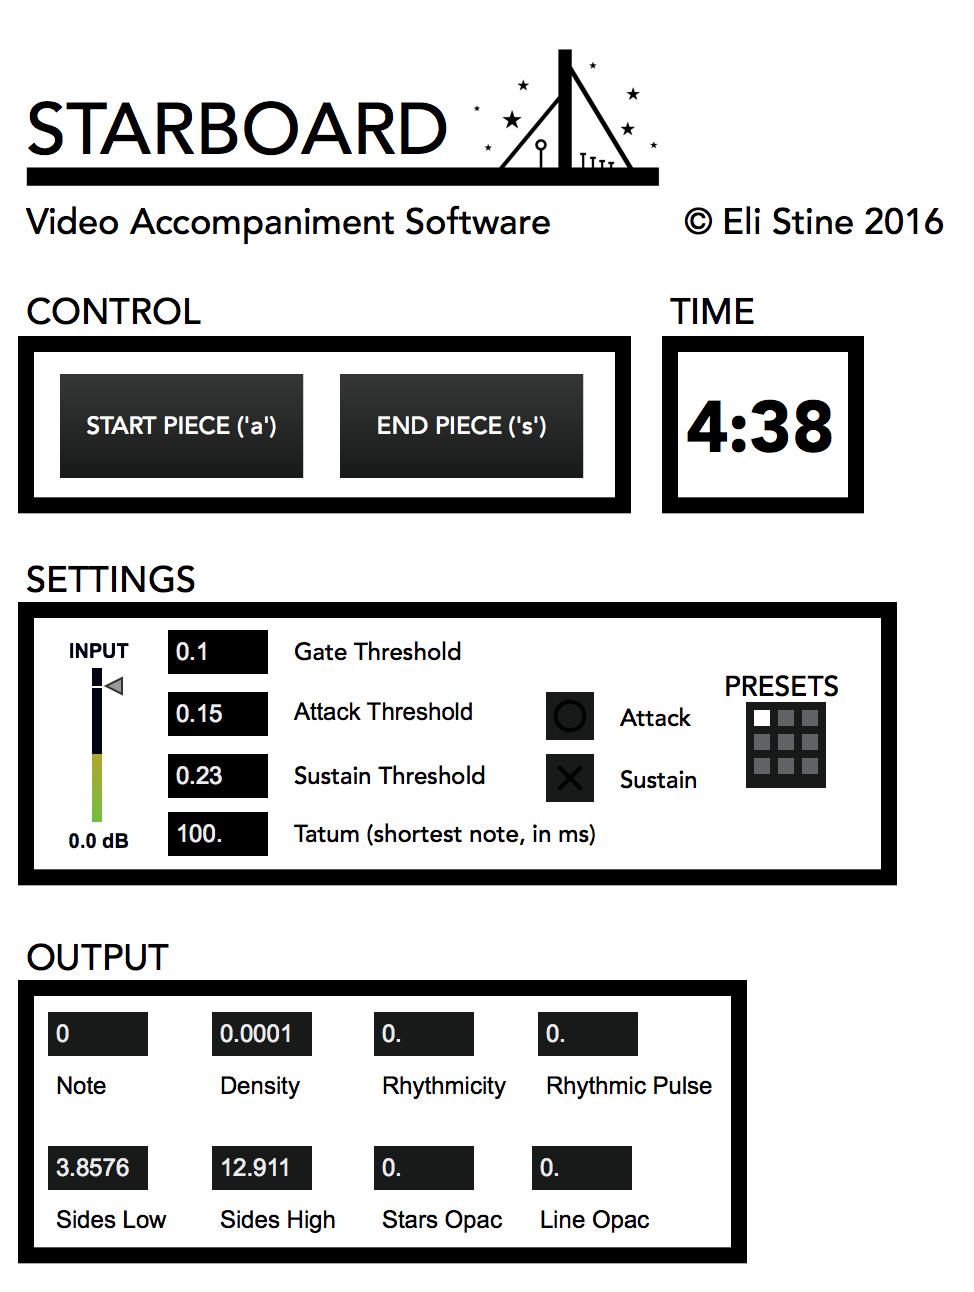 User interface I used to control (really just to set and forget the settings) the video of the piece.